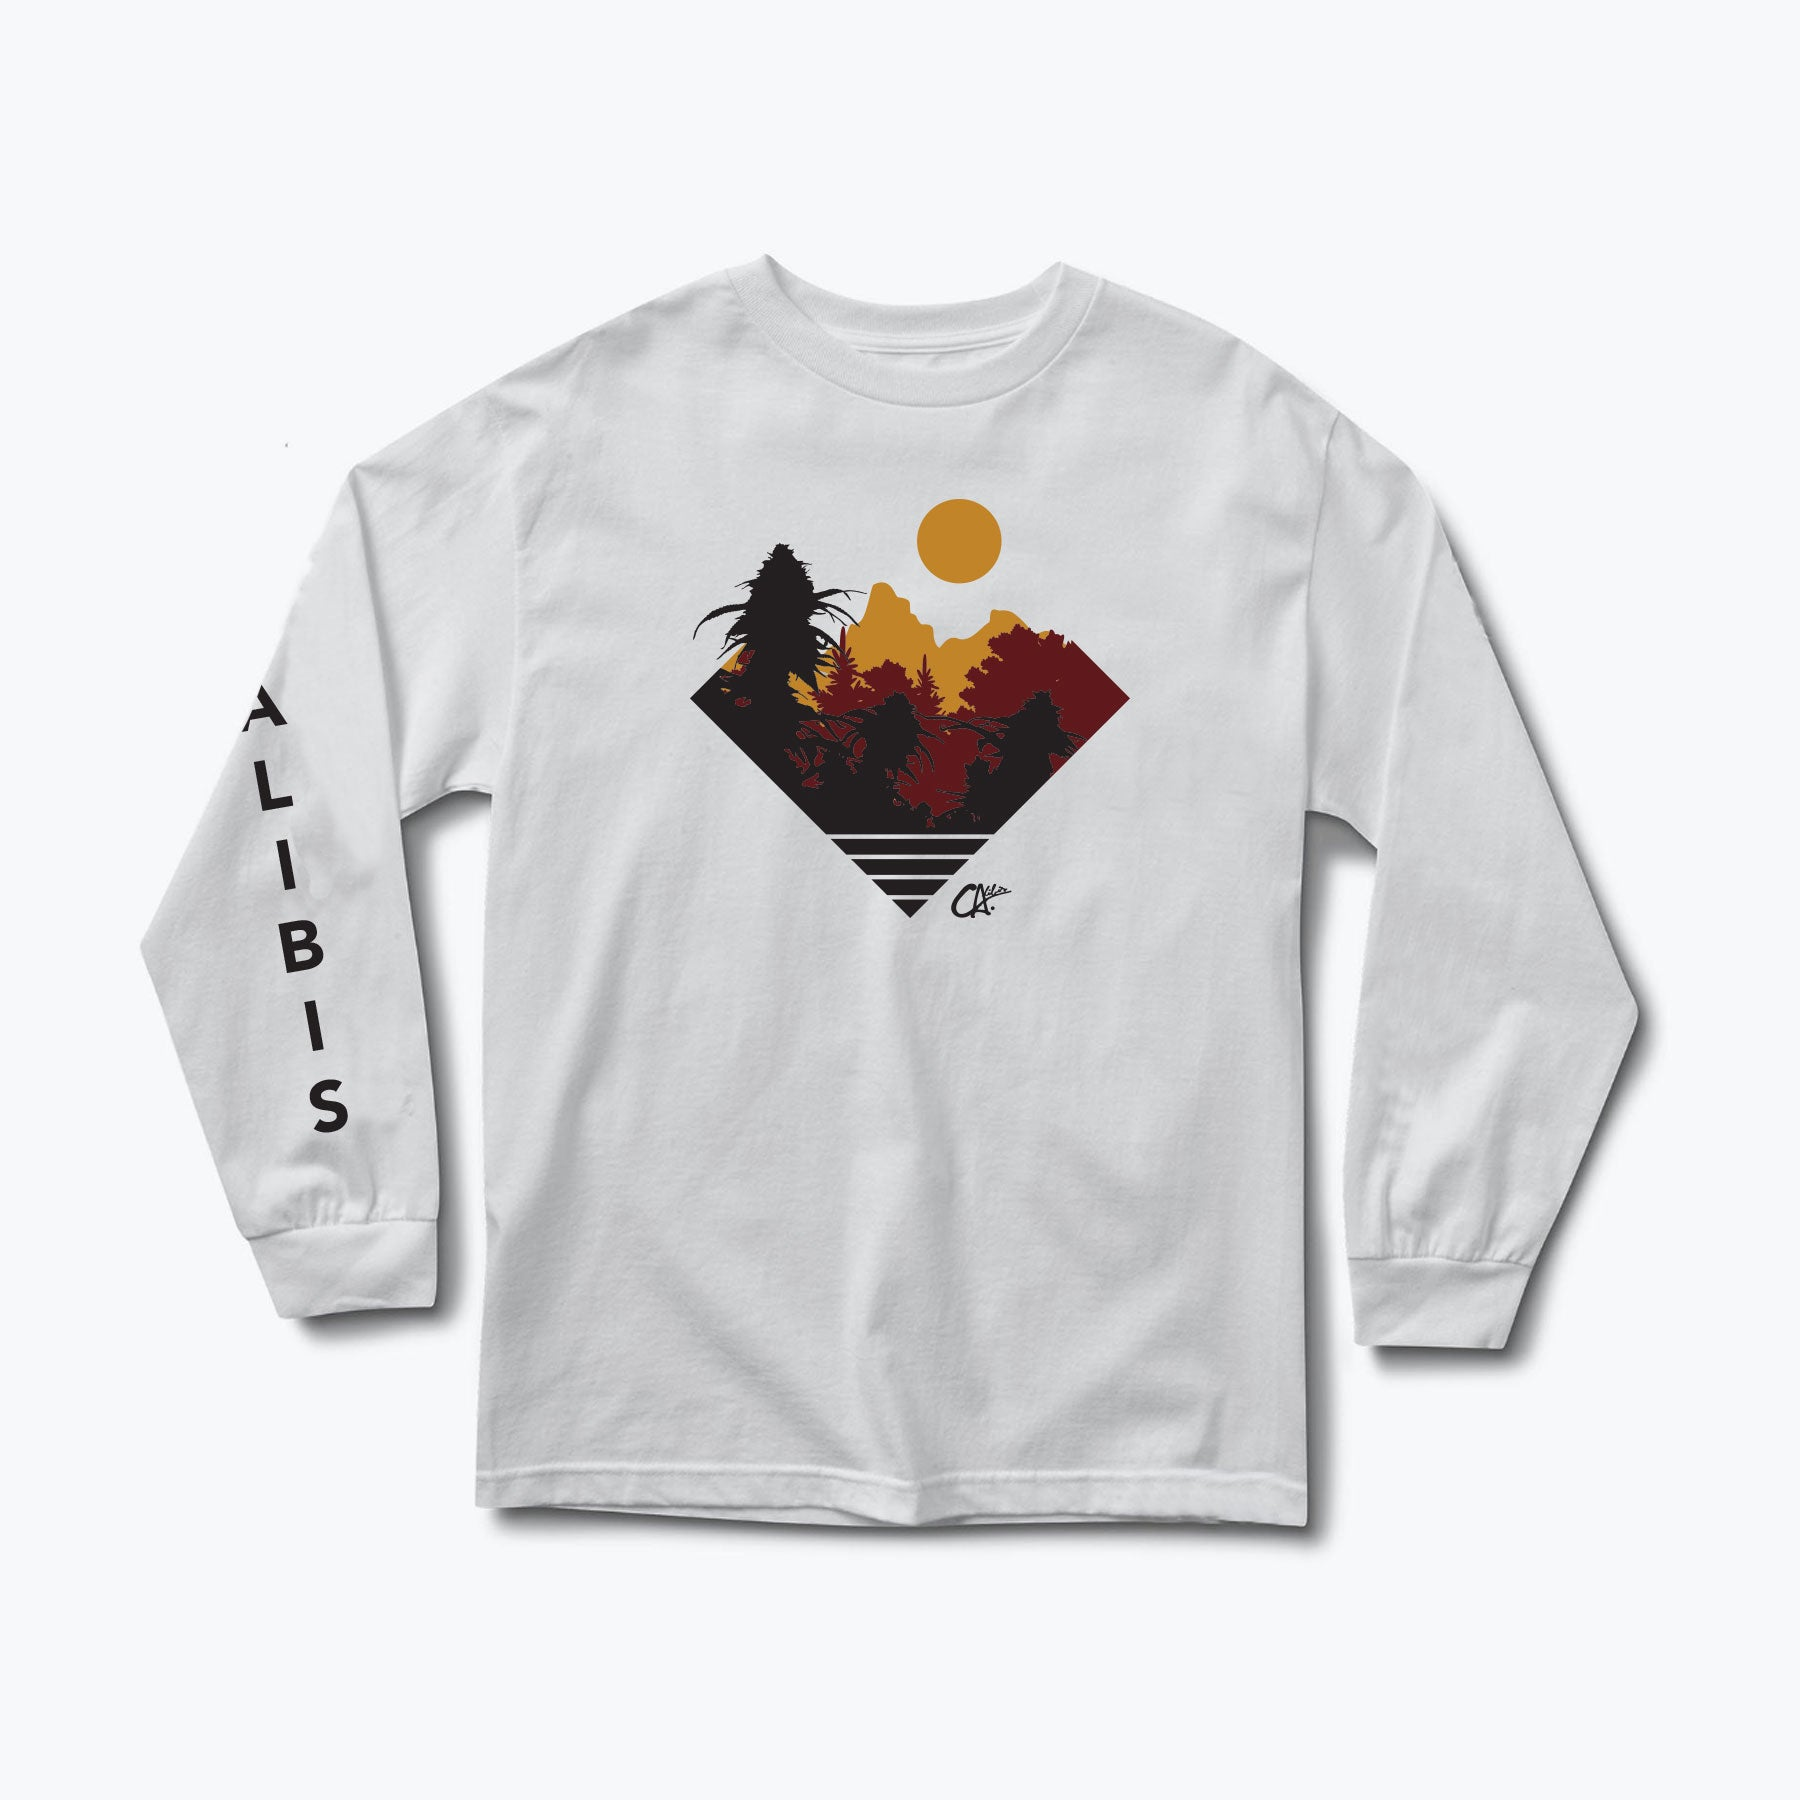 Kolas Long-sleeve Tee by Calibis Clothing